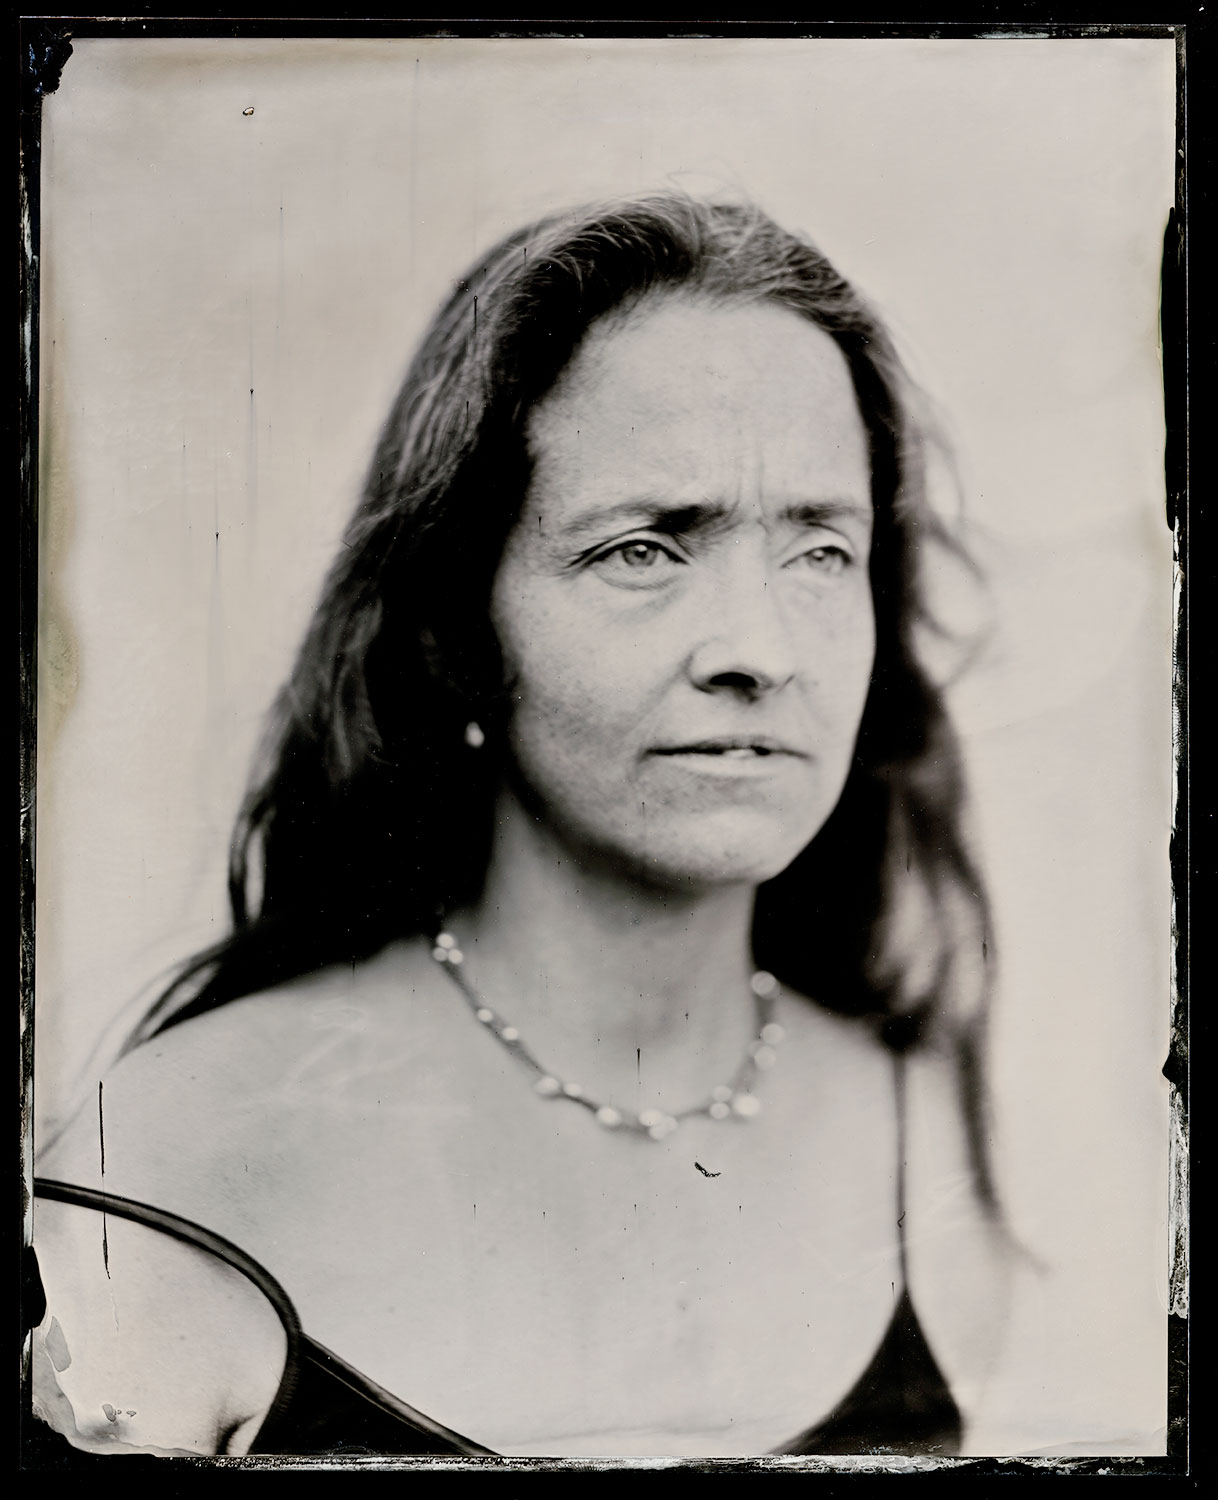 wetplate-scan188.jpg